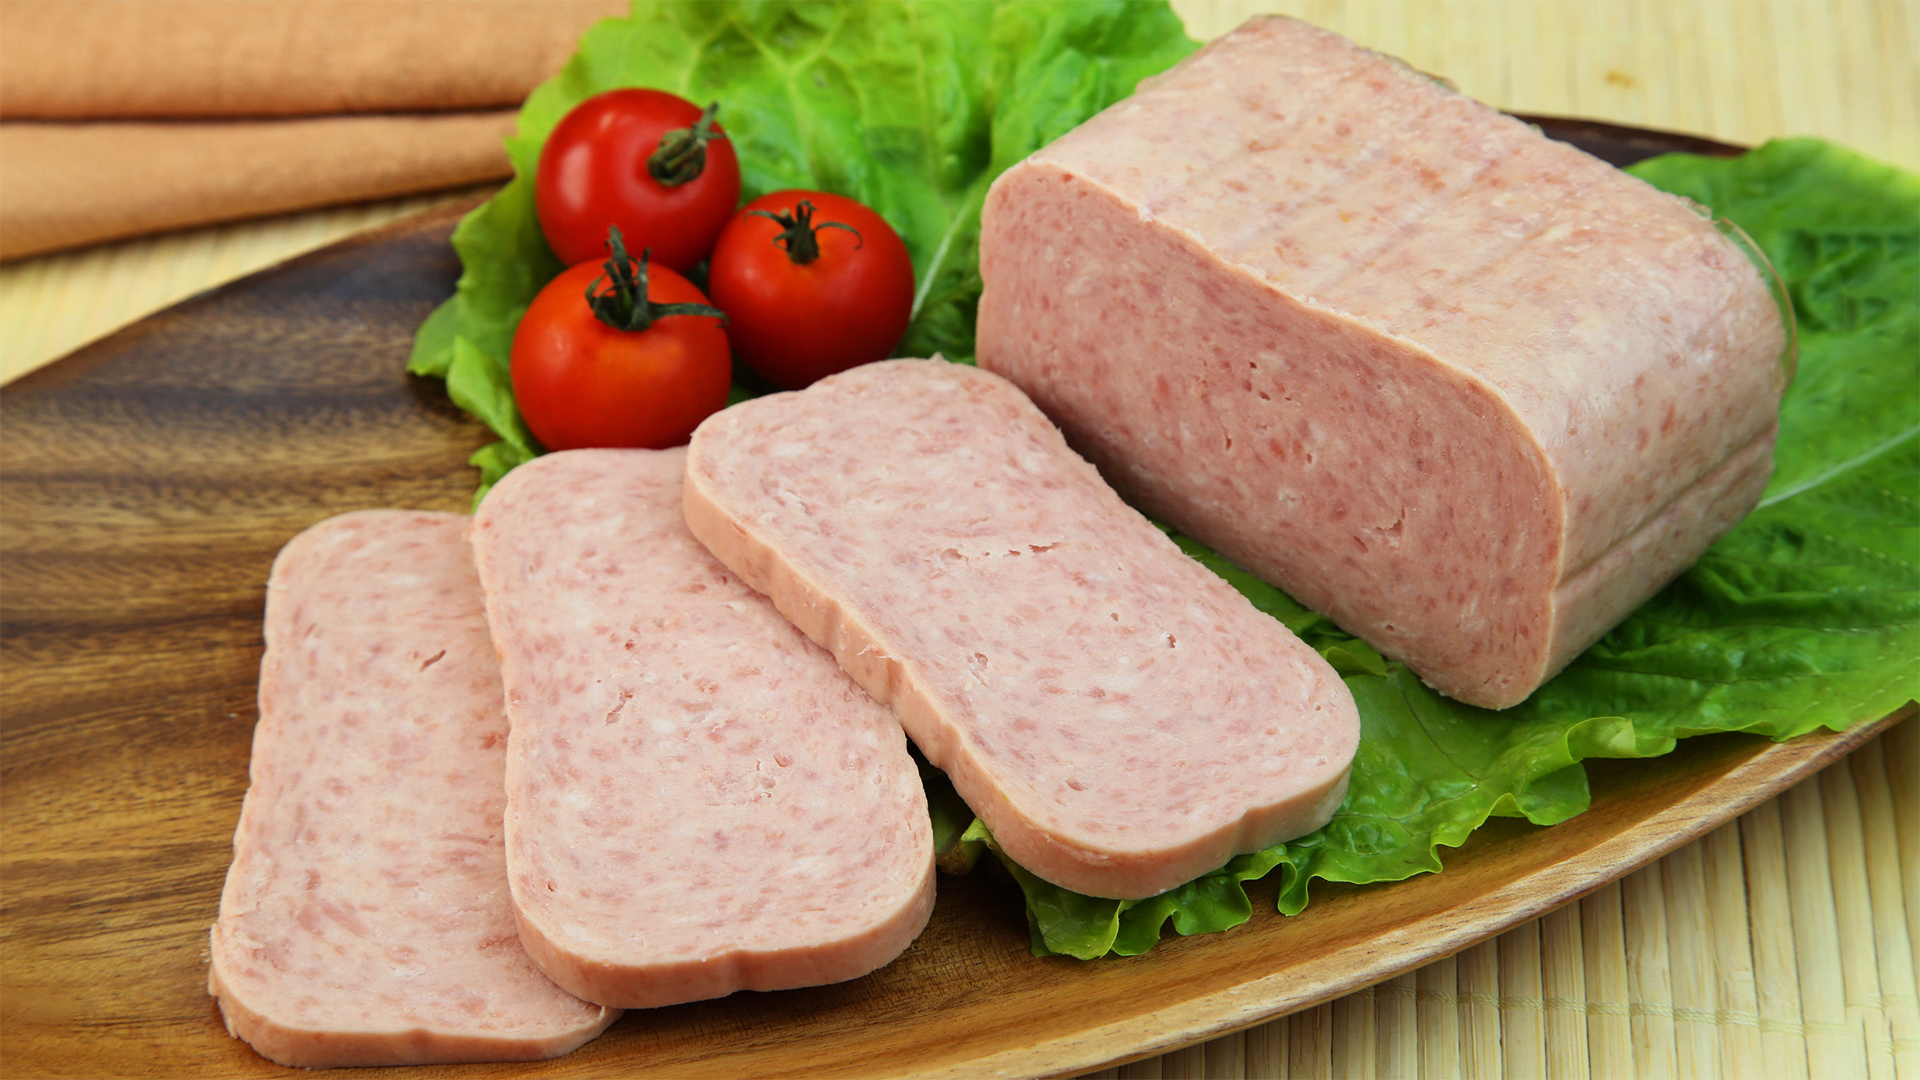 Luncheon Meat: The Only Kind Of Spam We Love